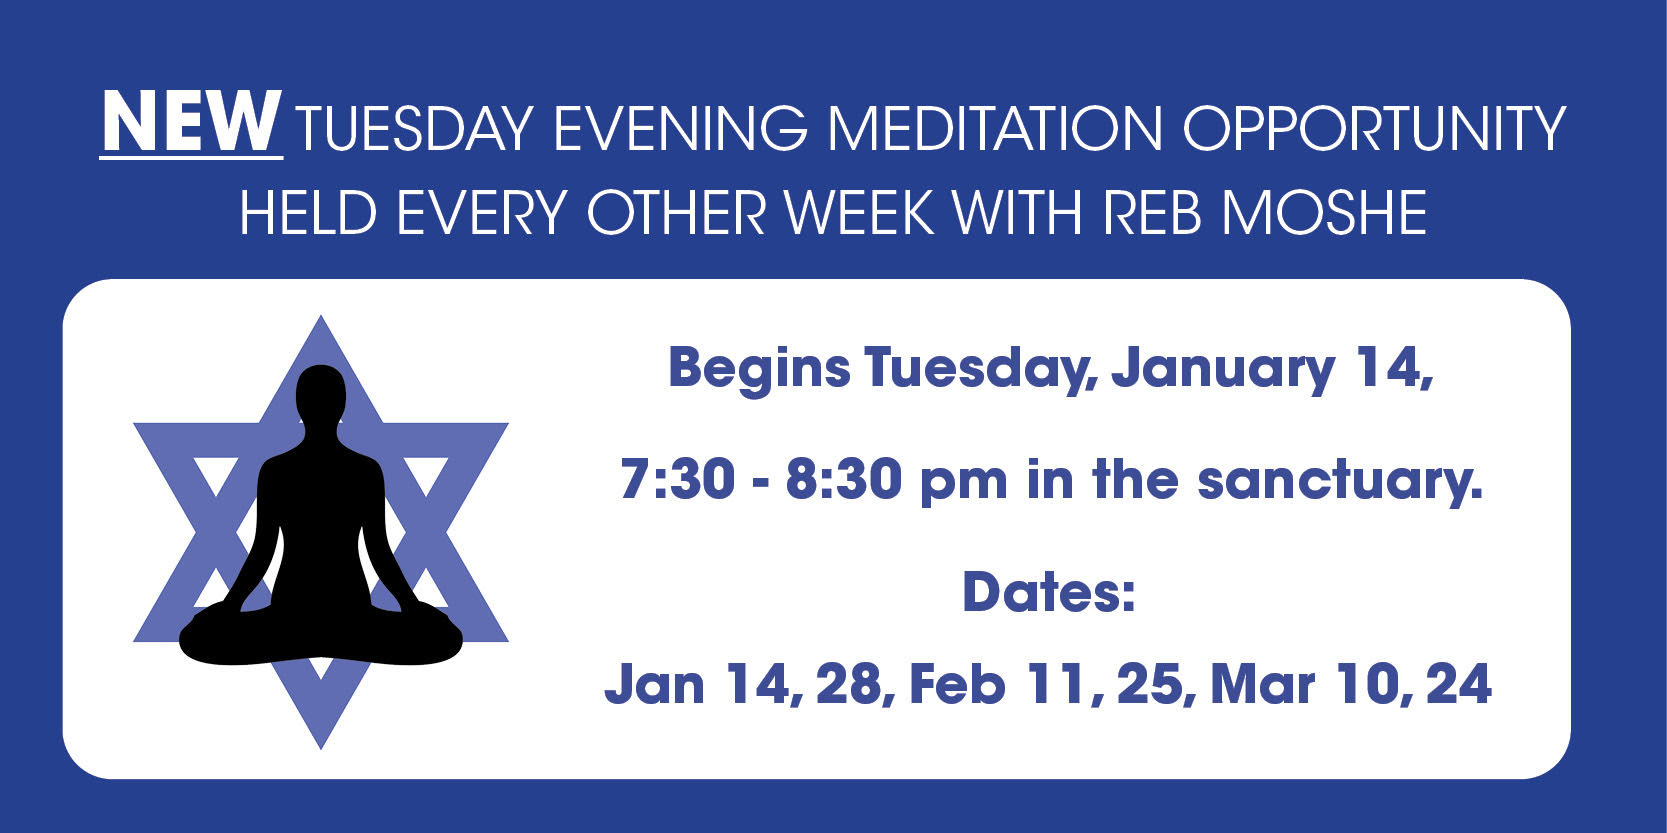 "<a href=""https://www.tbzbrookline.org/event/new-tuesday-evening-meditation-opportunity-held-every-other-week-with-reb-moshe.html""